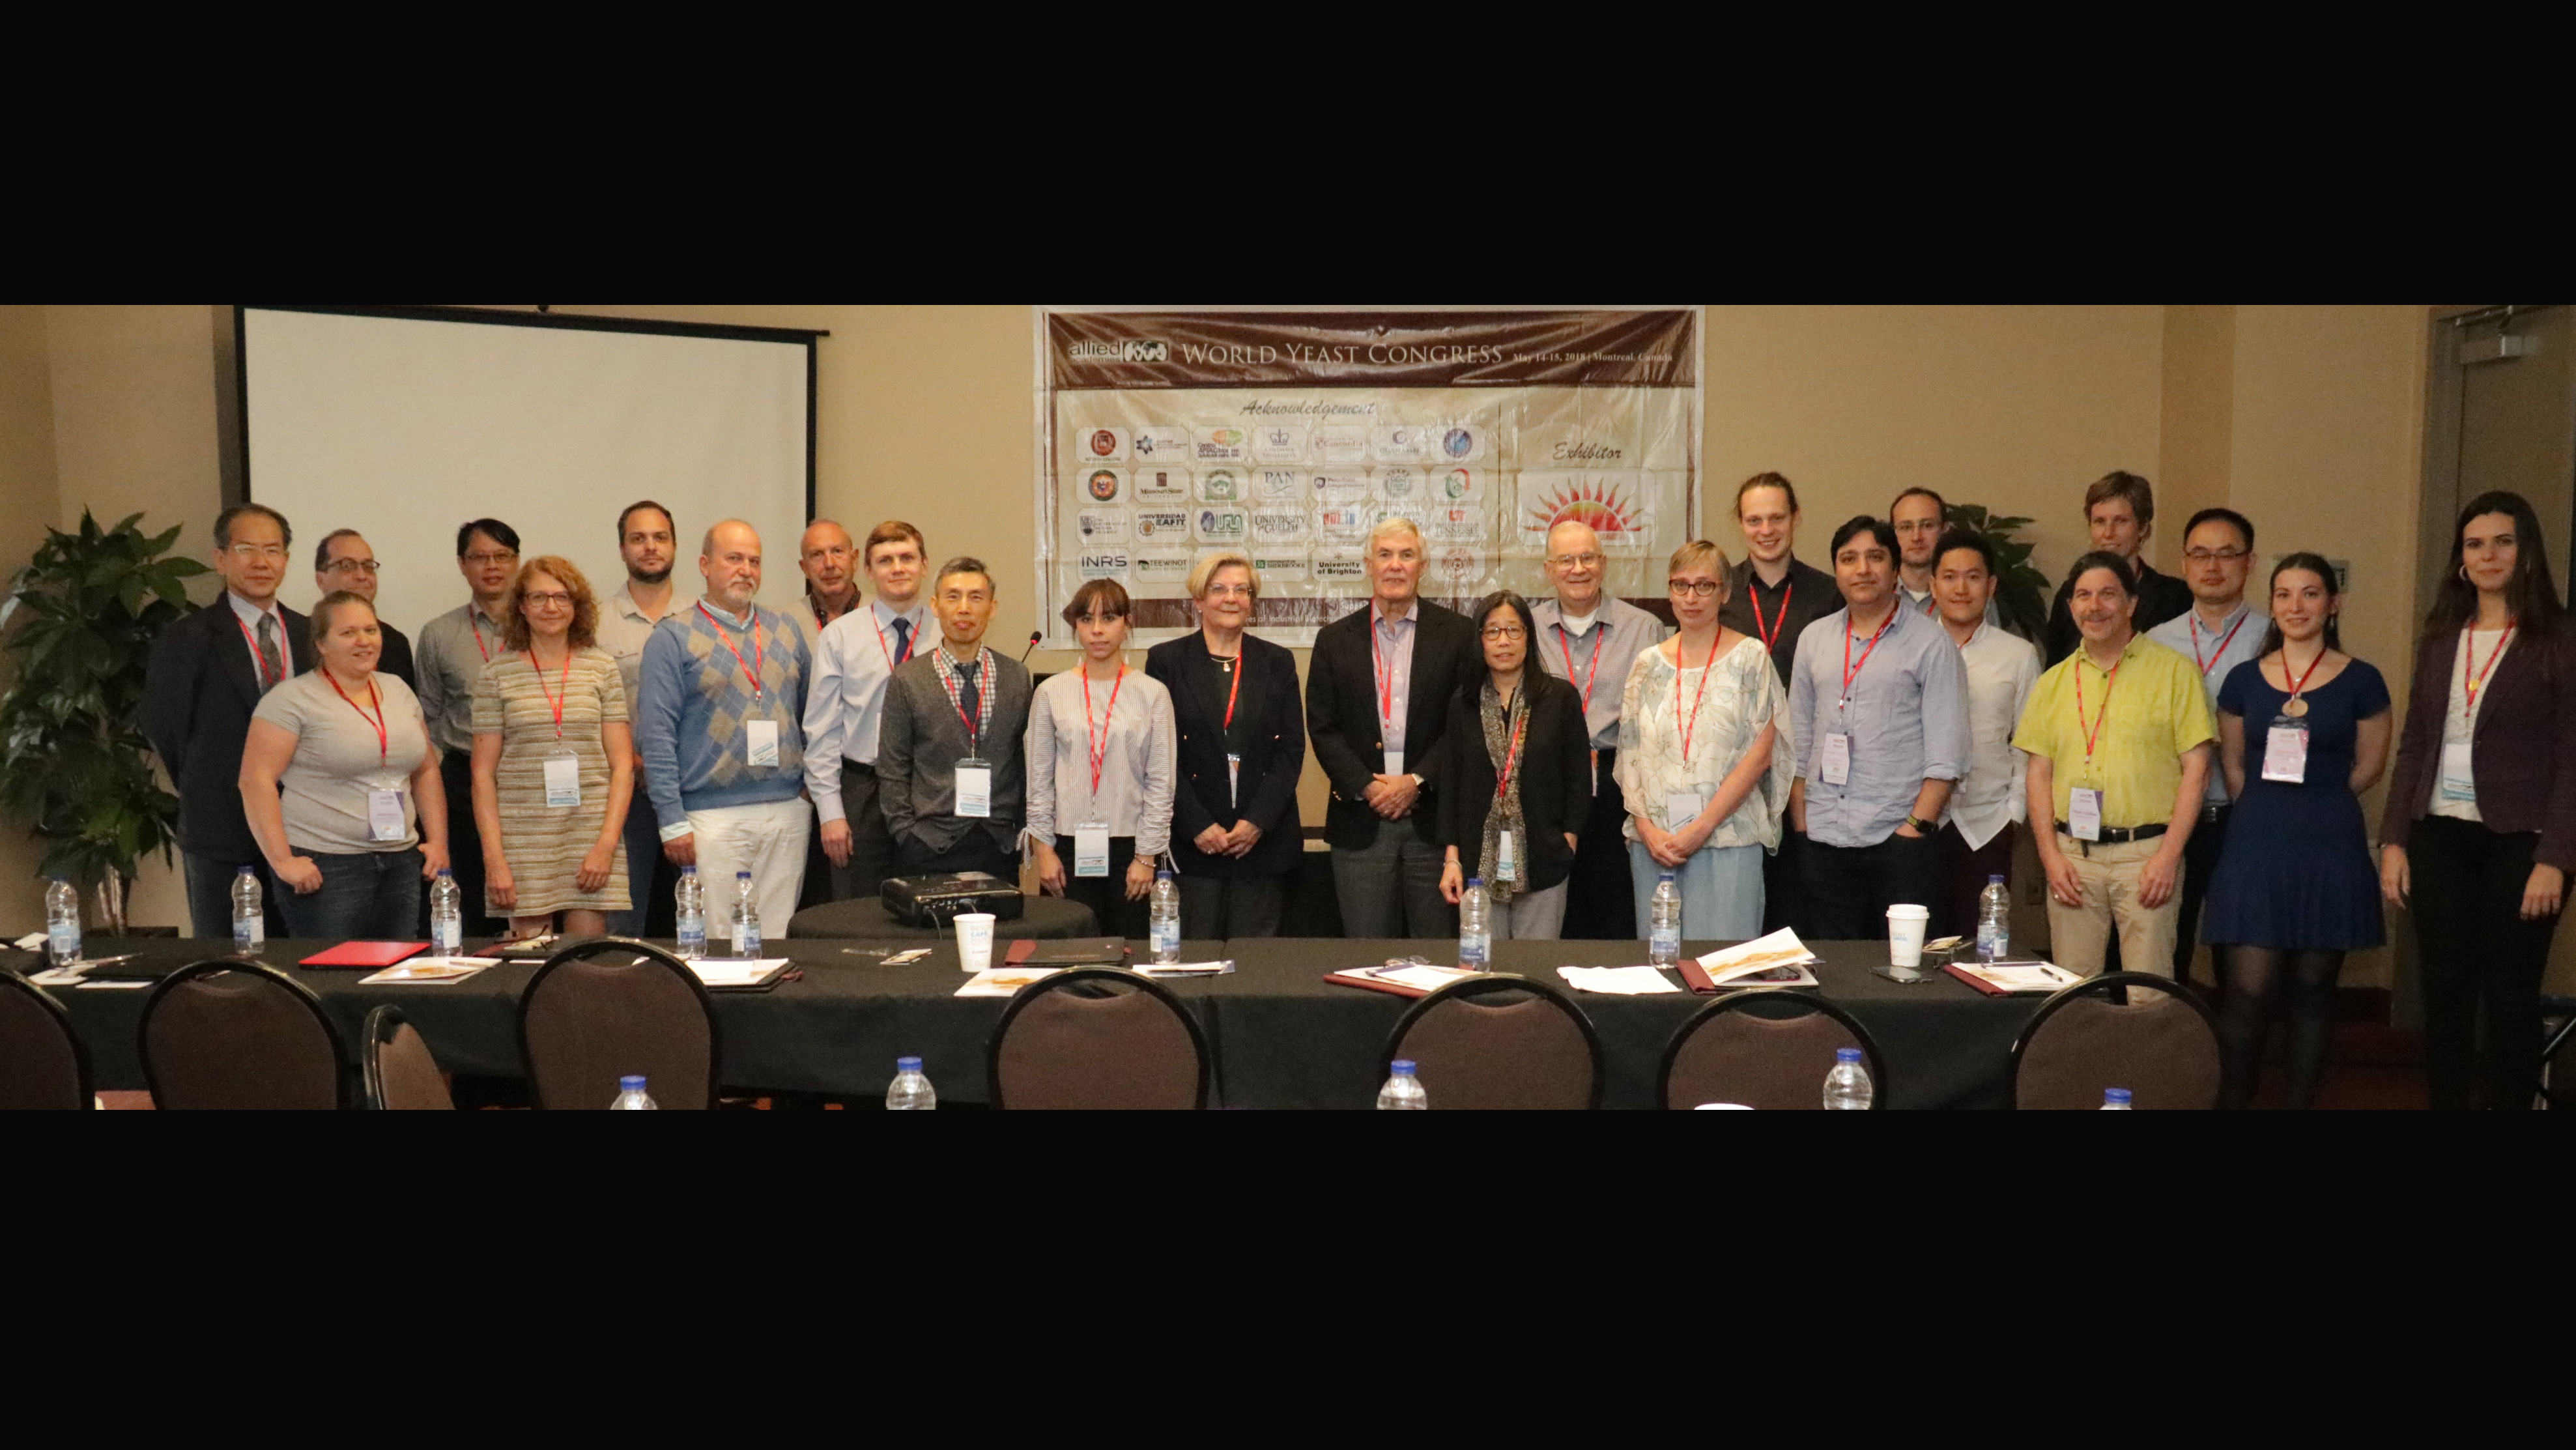 Participants at the World Yeast Conference. Dr. Kim is 10th from the left.